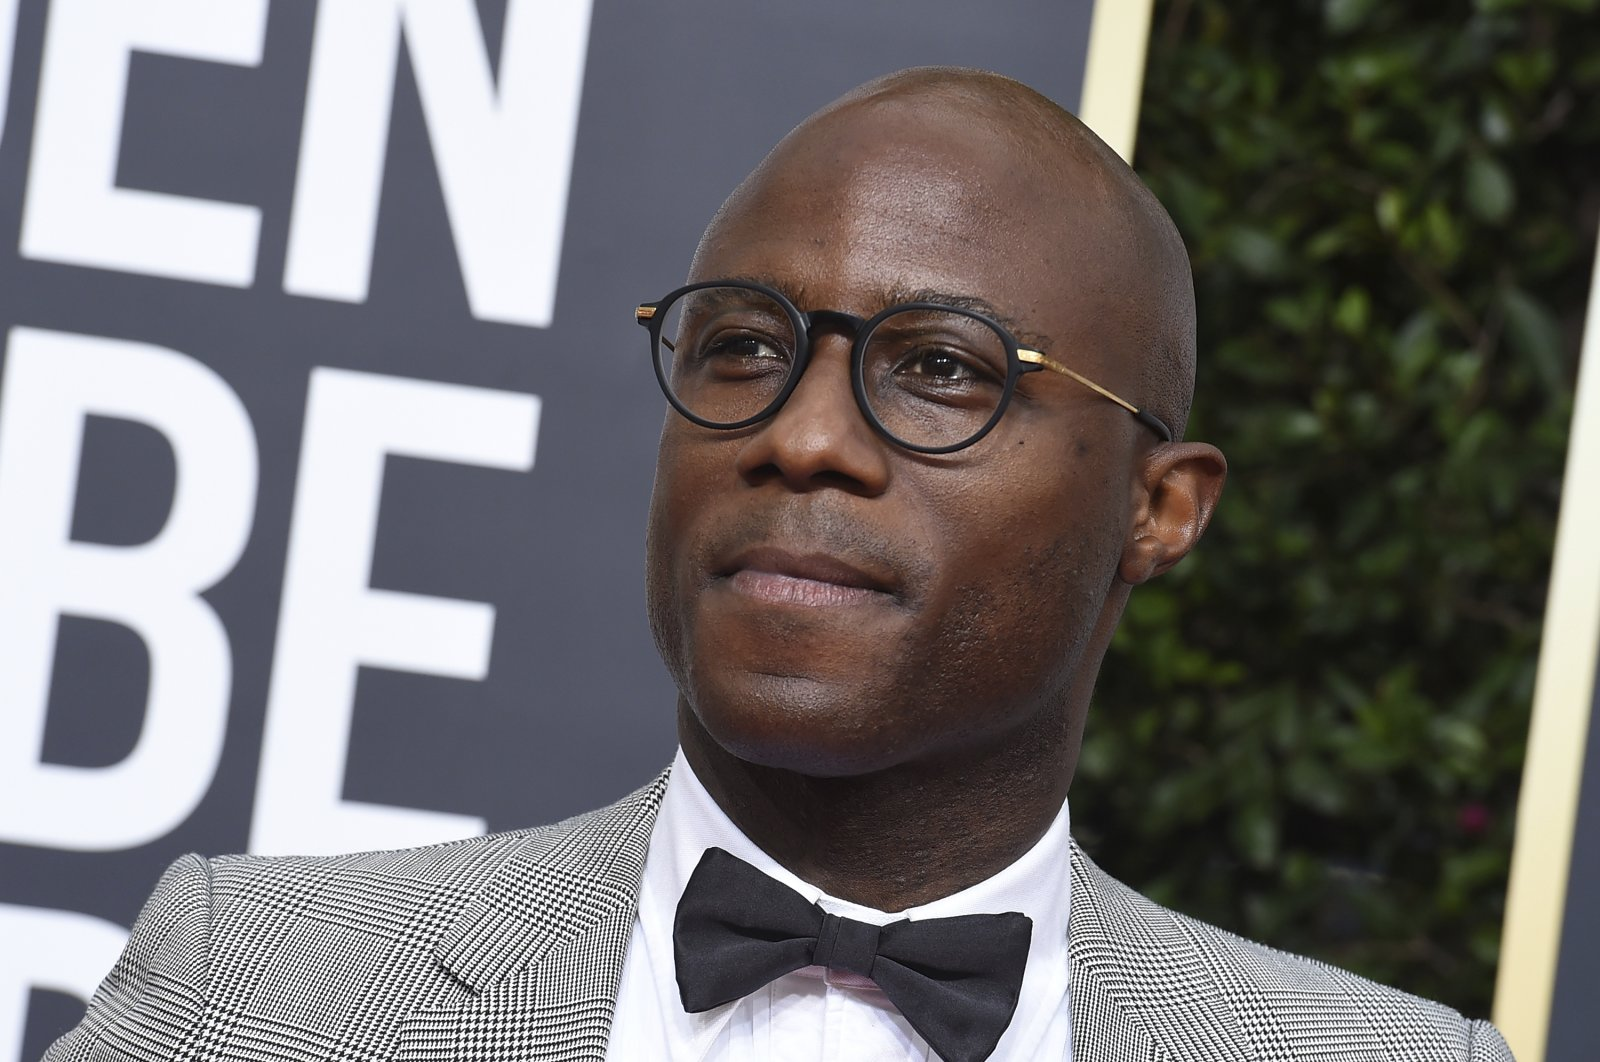 Barry Jenkins arrives at the 77th annual Golden Globe Awards in Beverly Hills, California, U.S., on Jan. 5, 2020. (AP Photo)